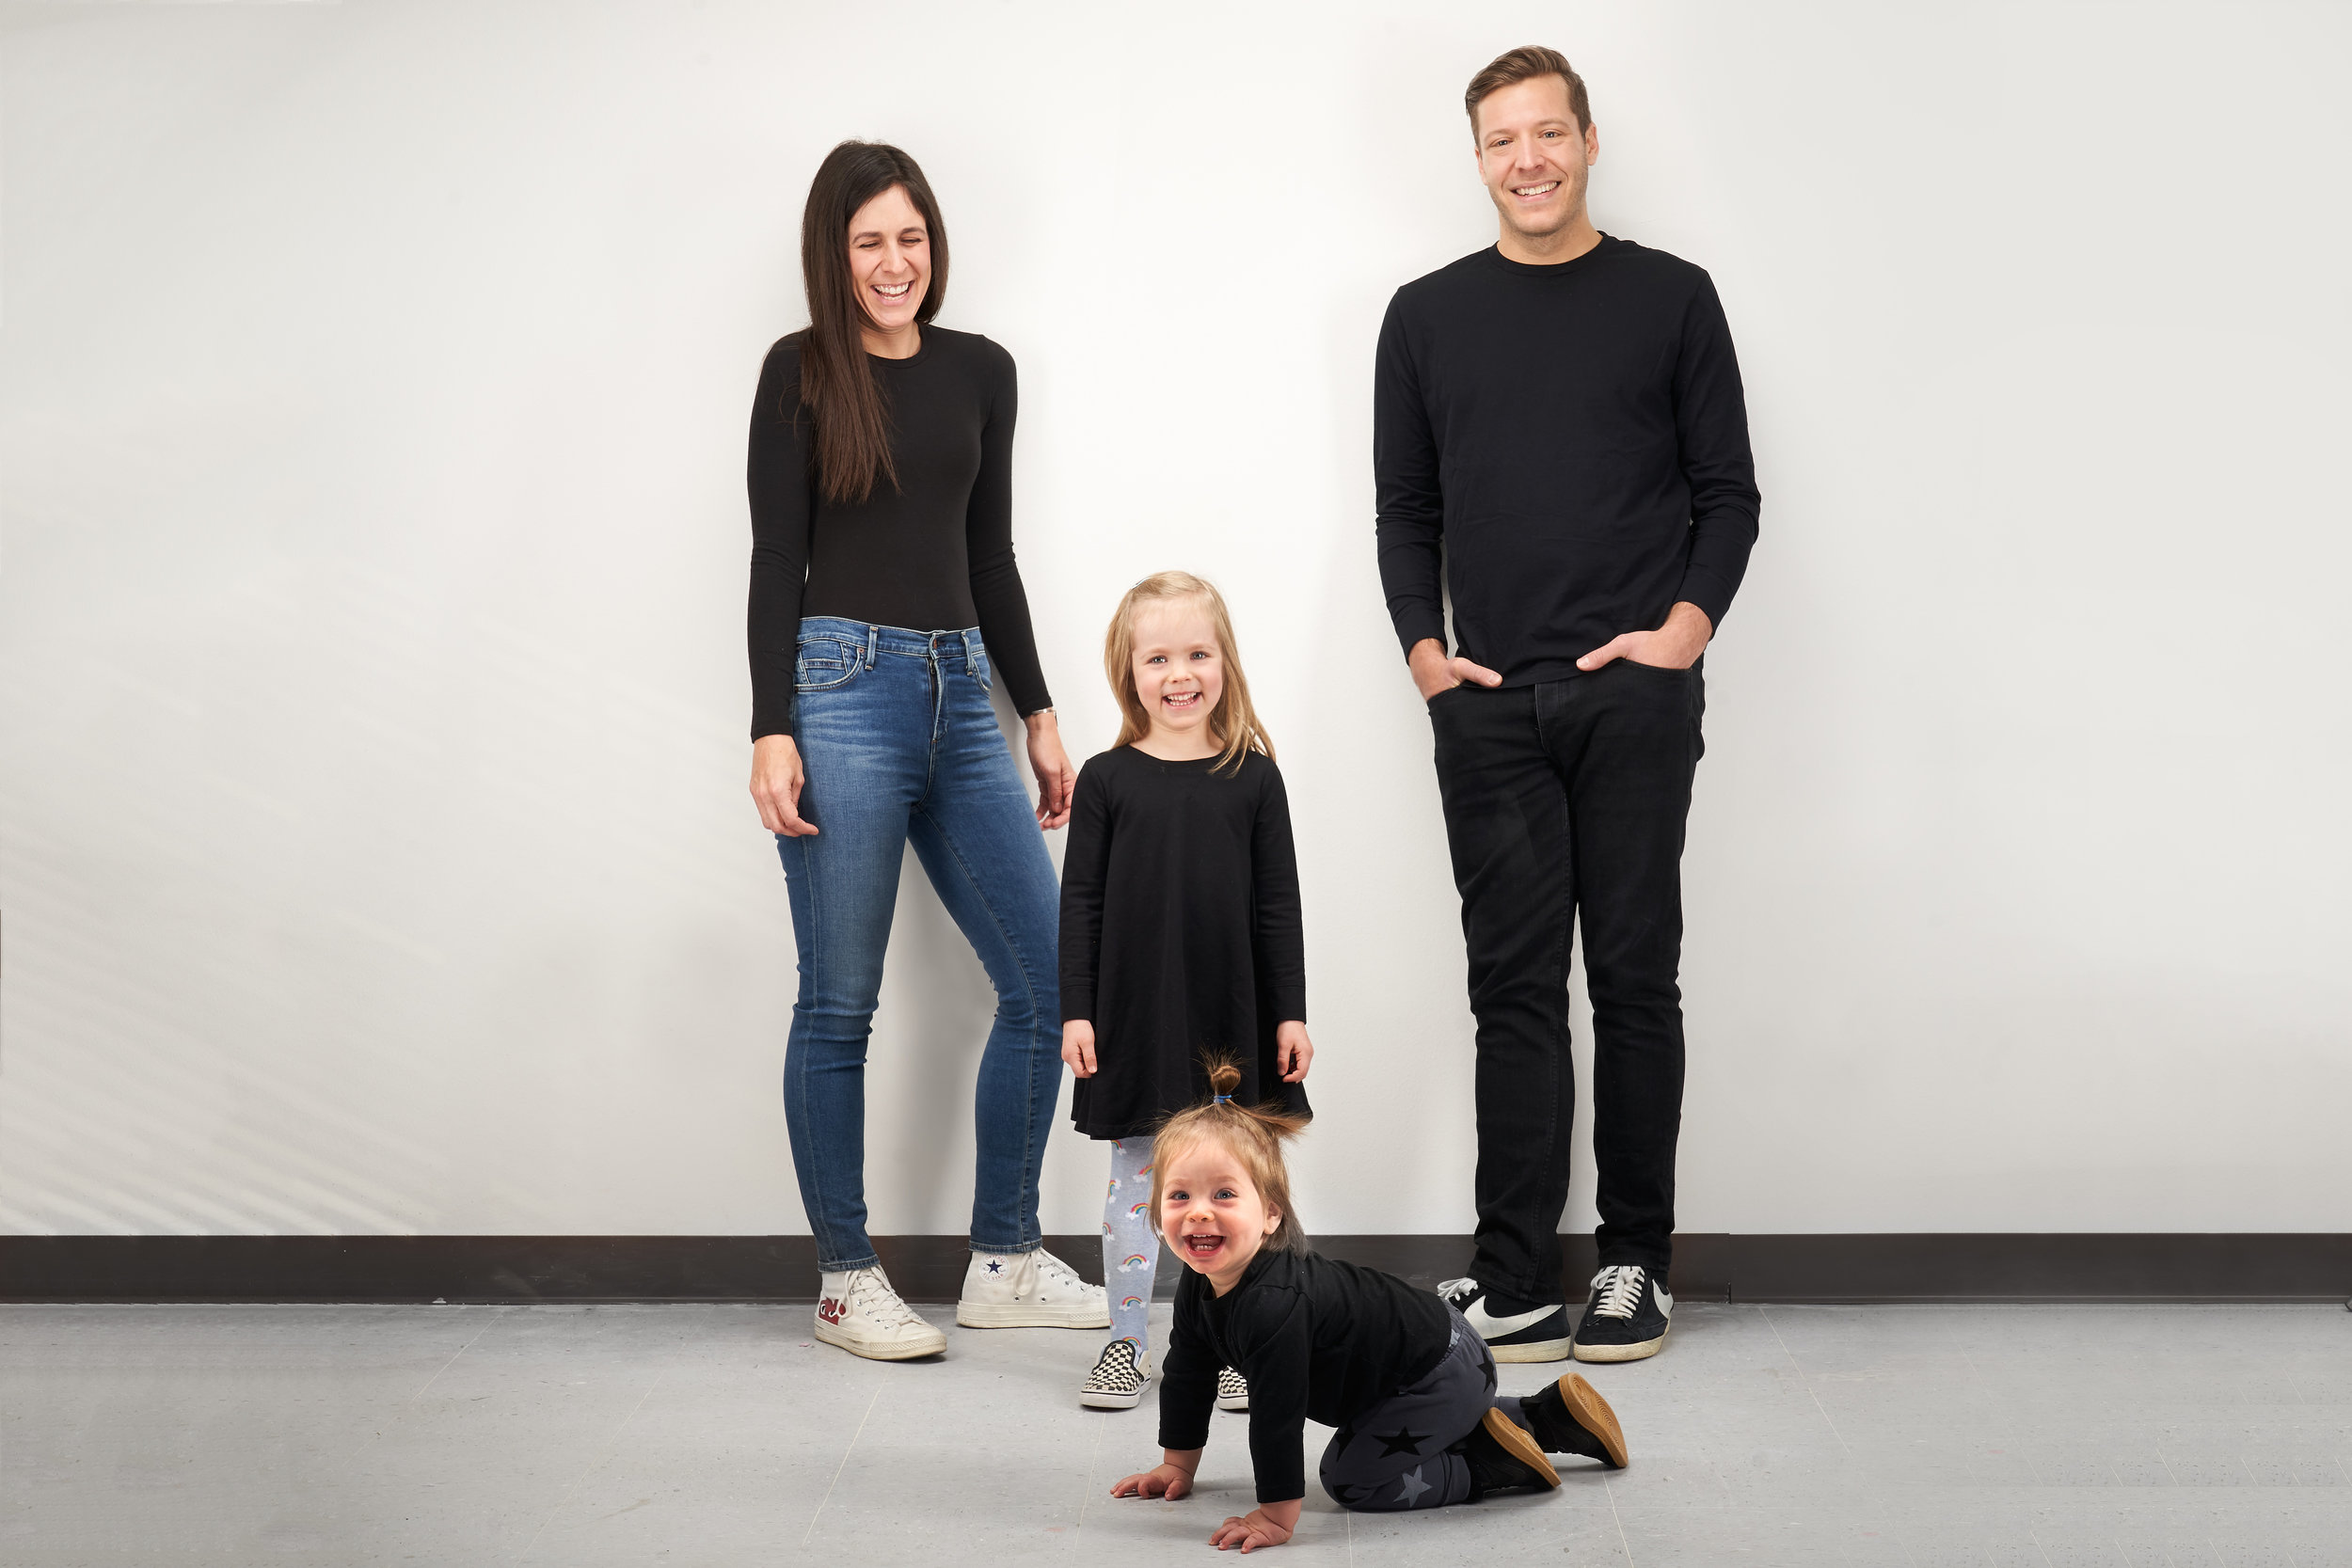 Studio Session - A portrait session, comparable to a magazine cover. The traditional look of a family portrait, perfect for the extended-family to crash.